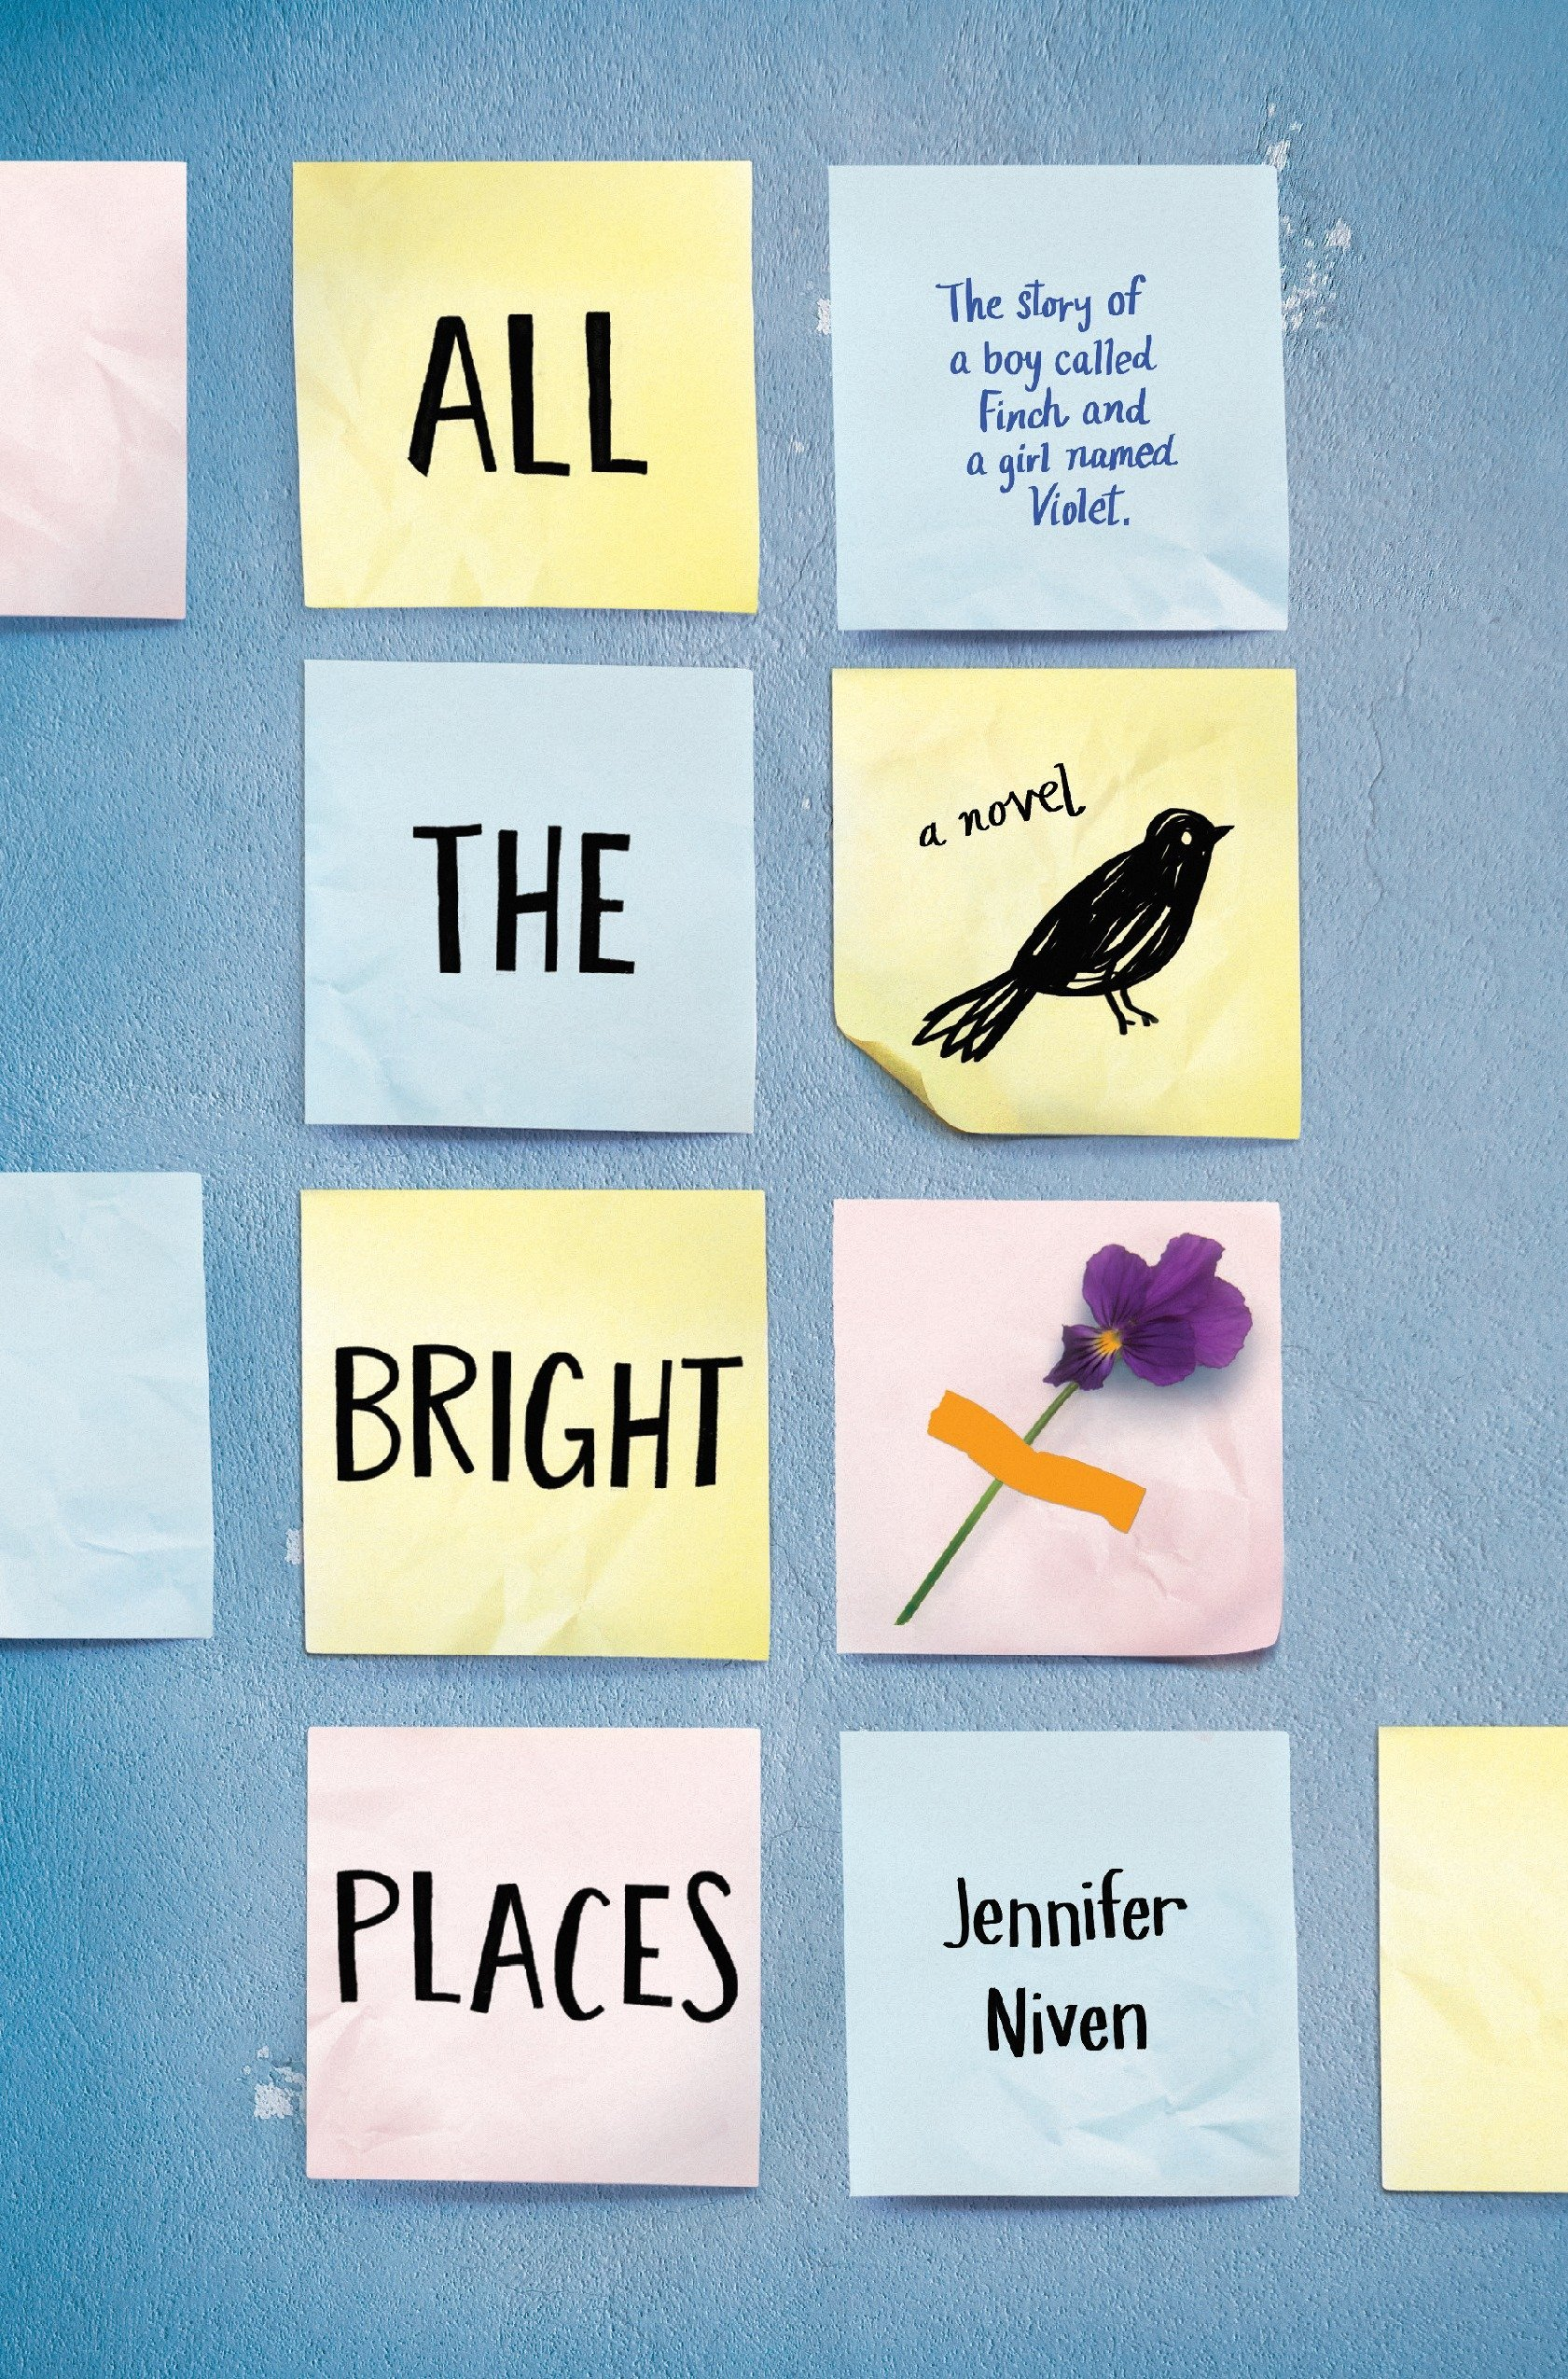 All the Bright Places pdf